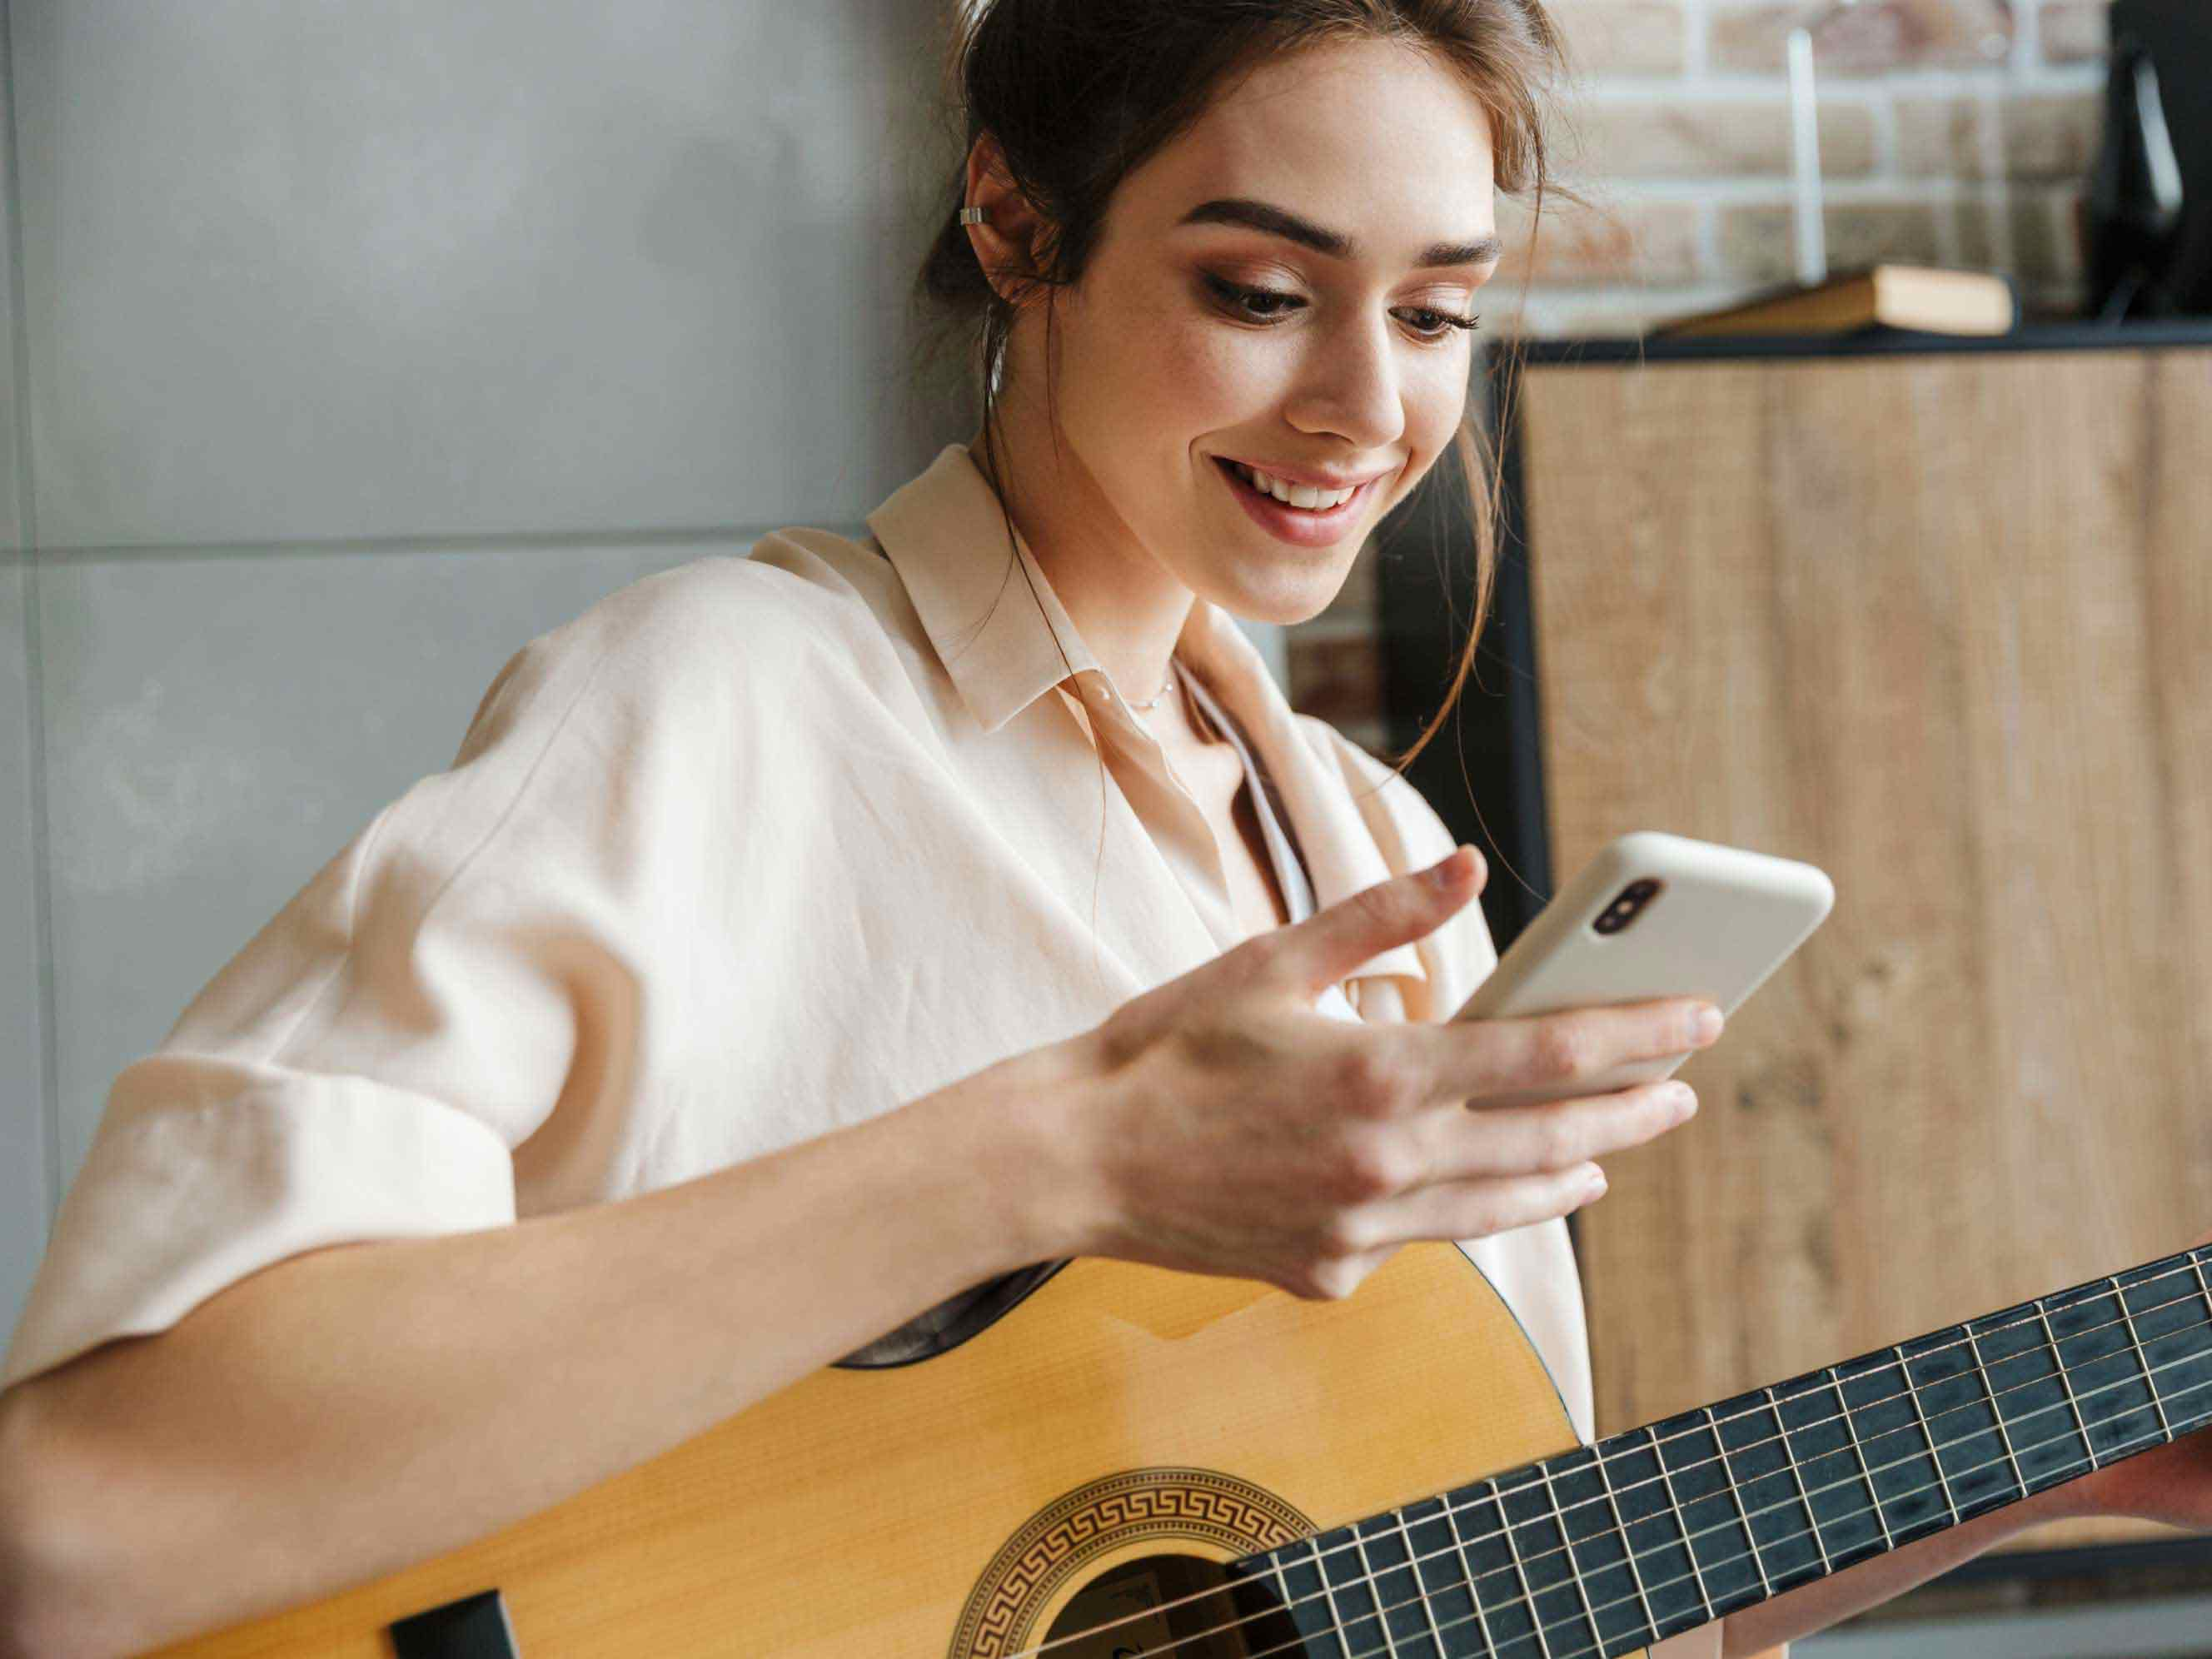 Musician pauses playing her guitar to look at the notification on her phone that she's receiving money in her PayPal account